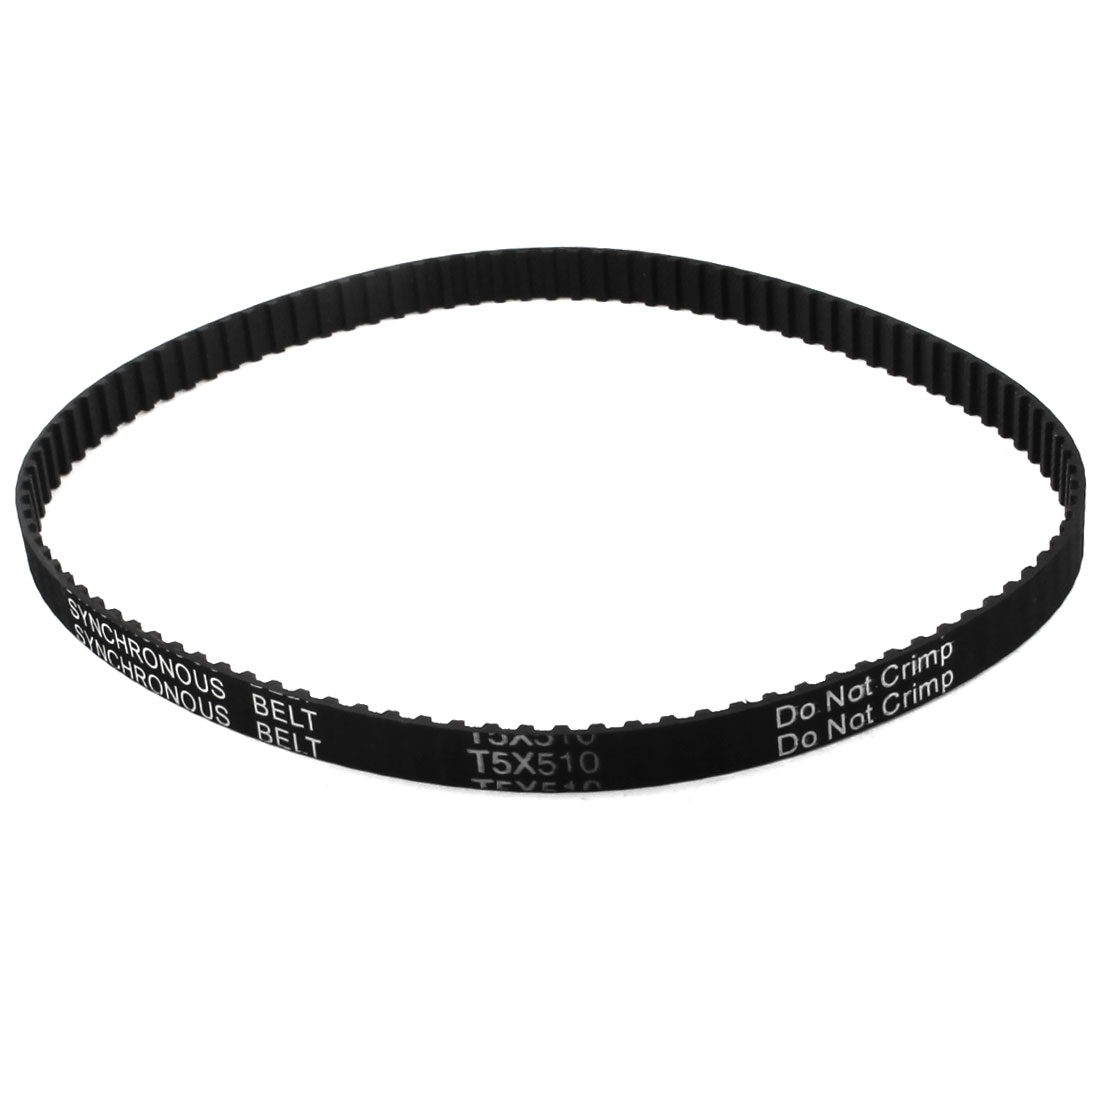 T5x510 102 Teeth 5mm Pitch 10mm Width Single Side Cogged Industrial CNC Machine Synchronous Timing Belt 510mm Girth